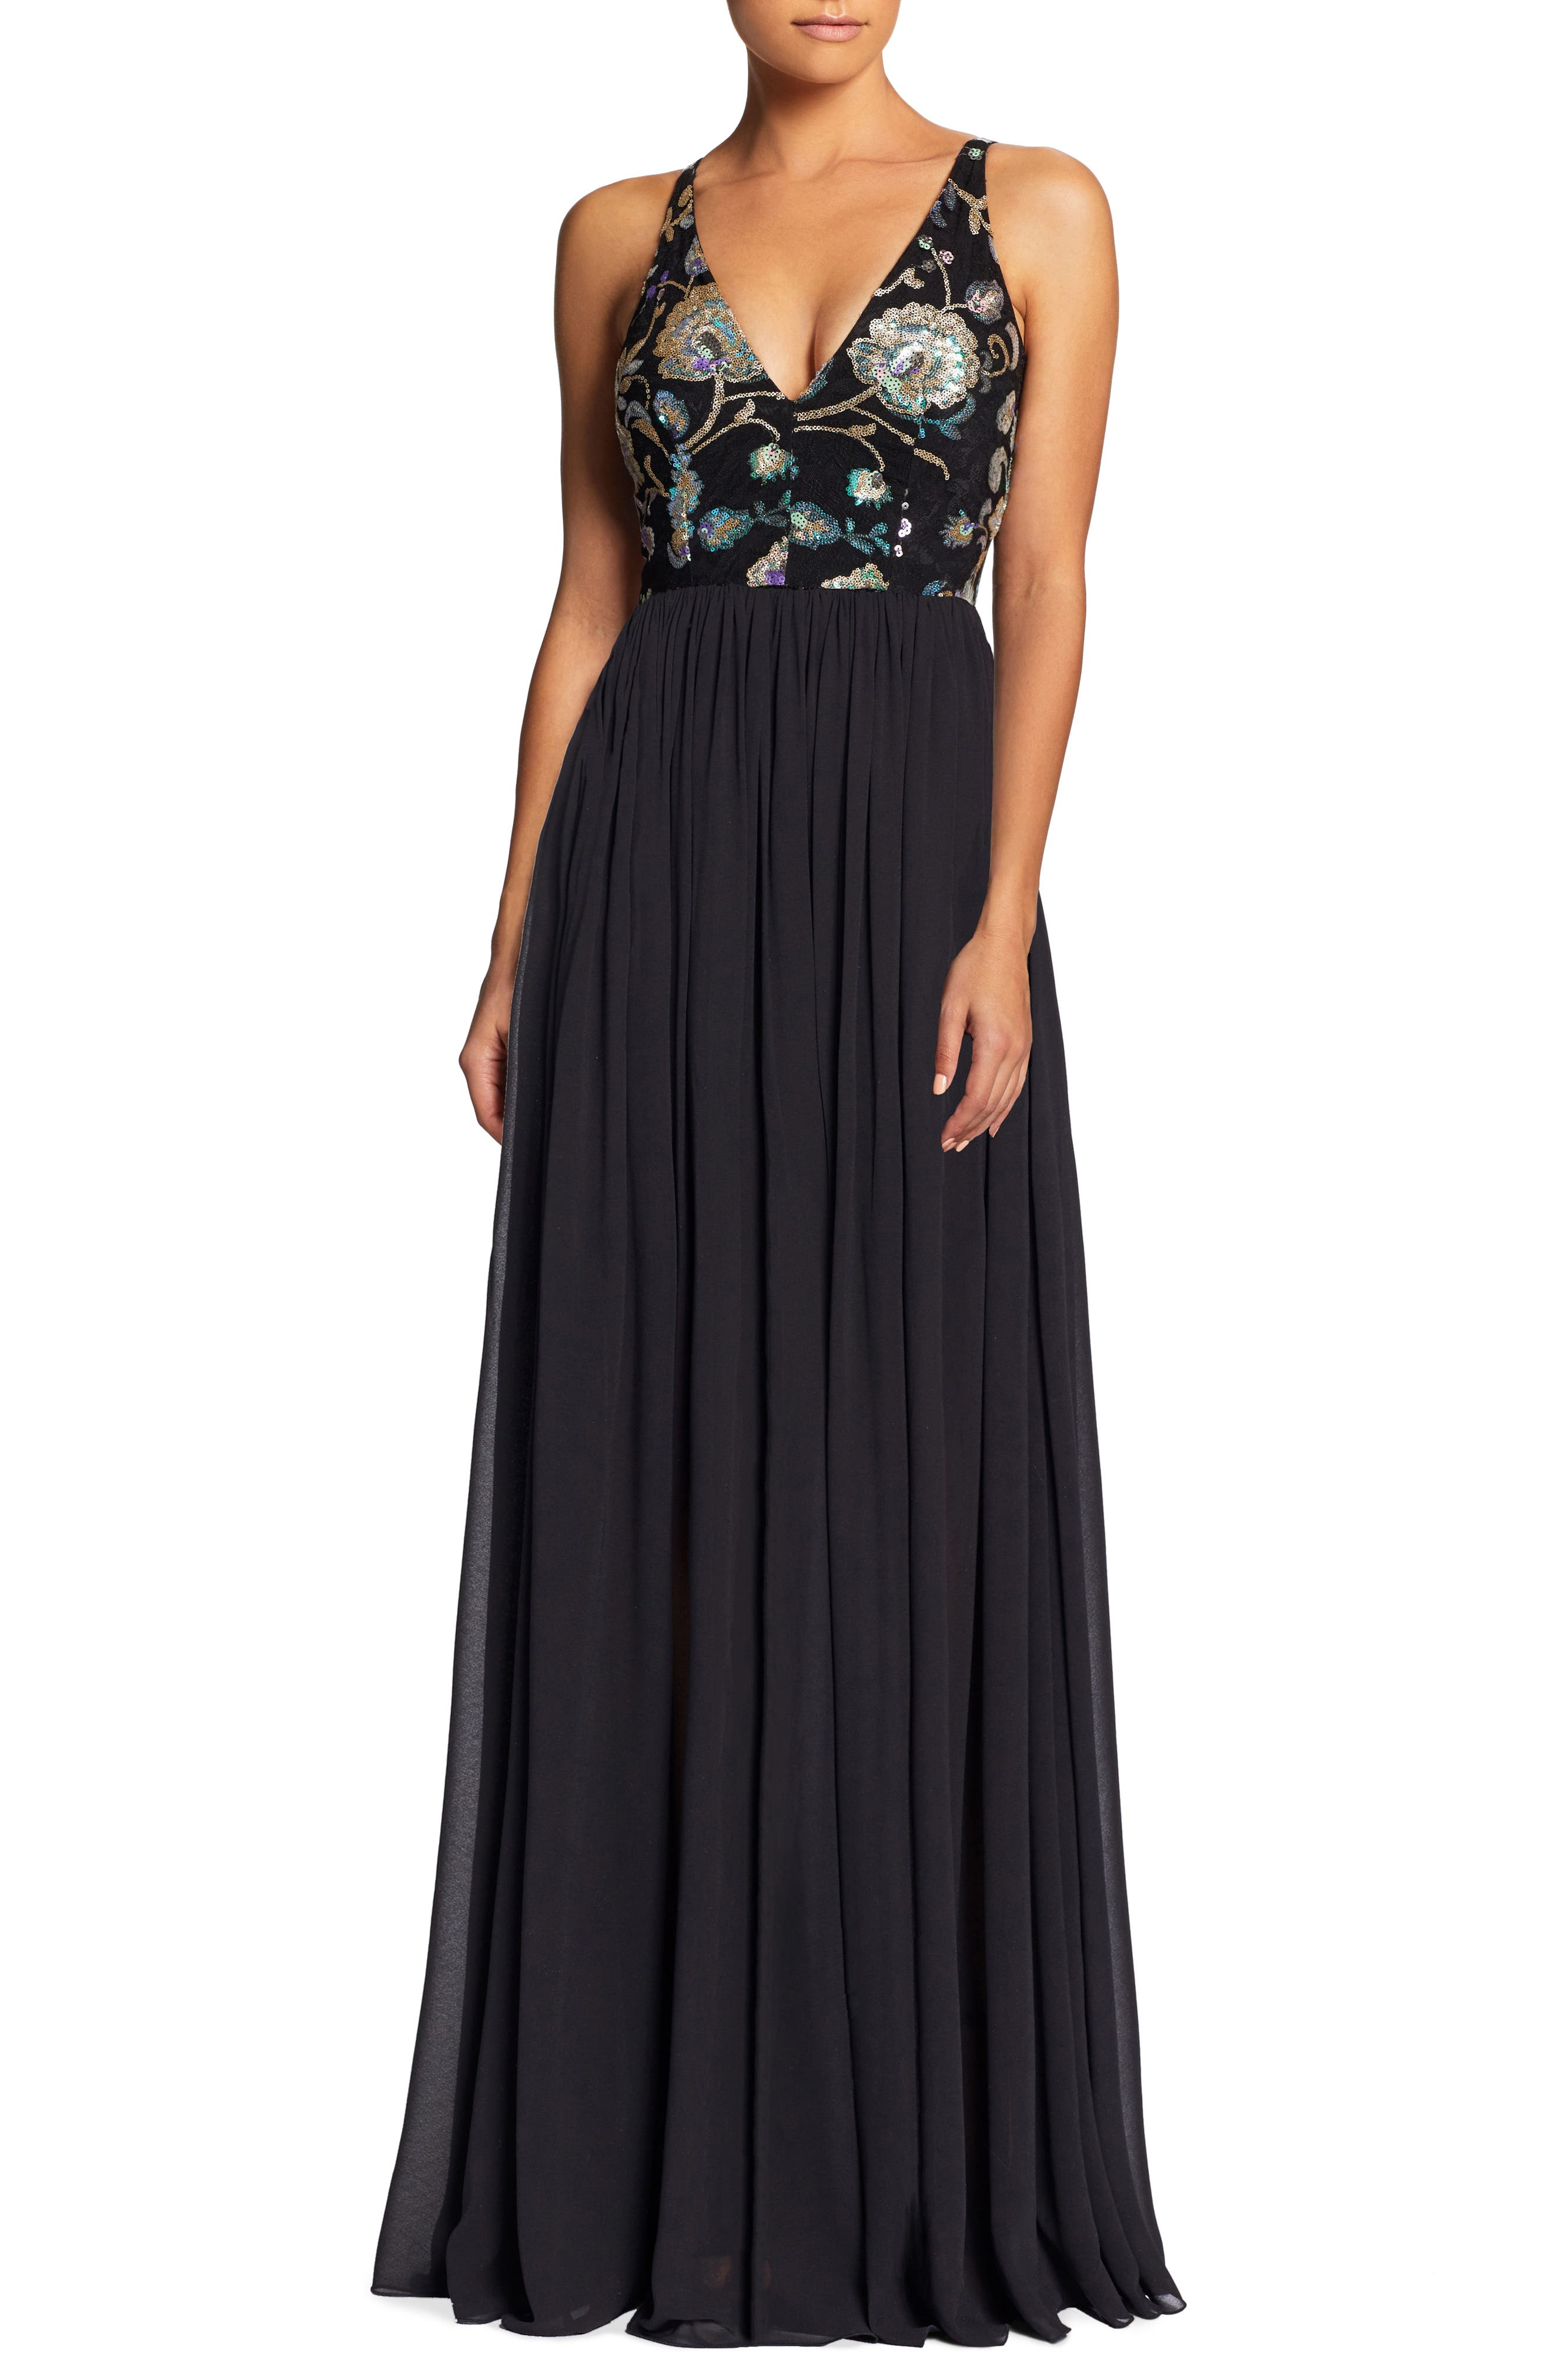 Adriana Sequin Bodice Gown,                             Main thumbnail 1, color,                             Black/ Iridescent Floral